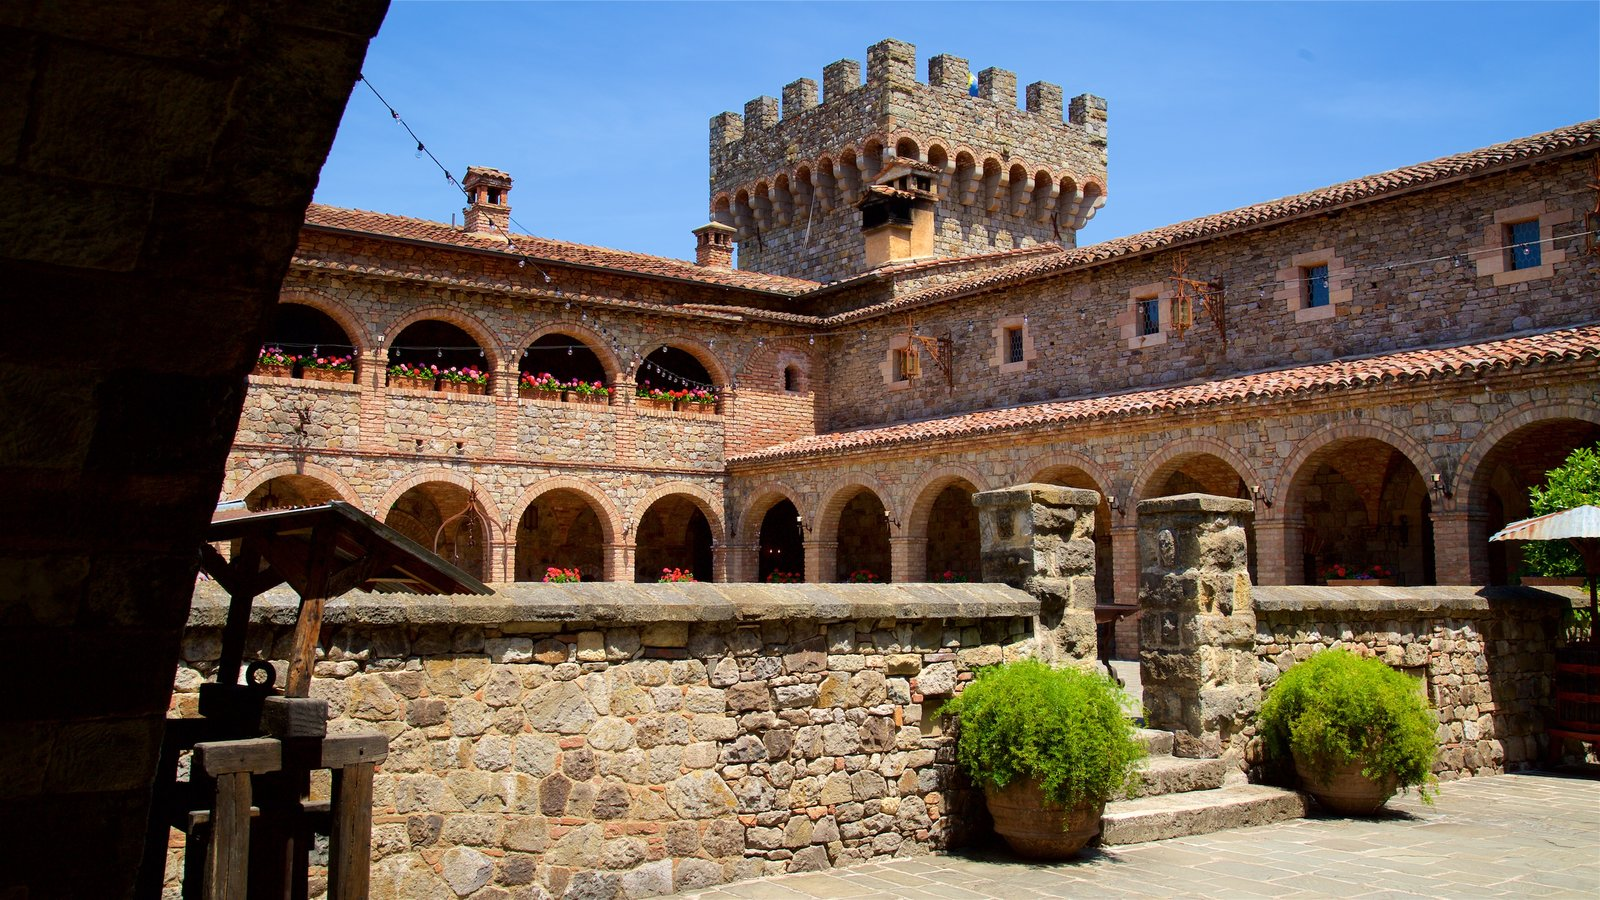 Castello di Amorosa which includes chateau or palace and heritage elements